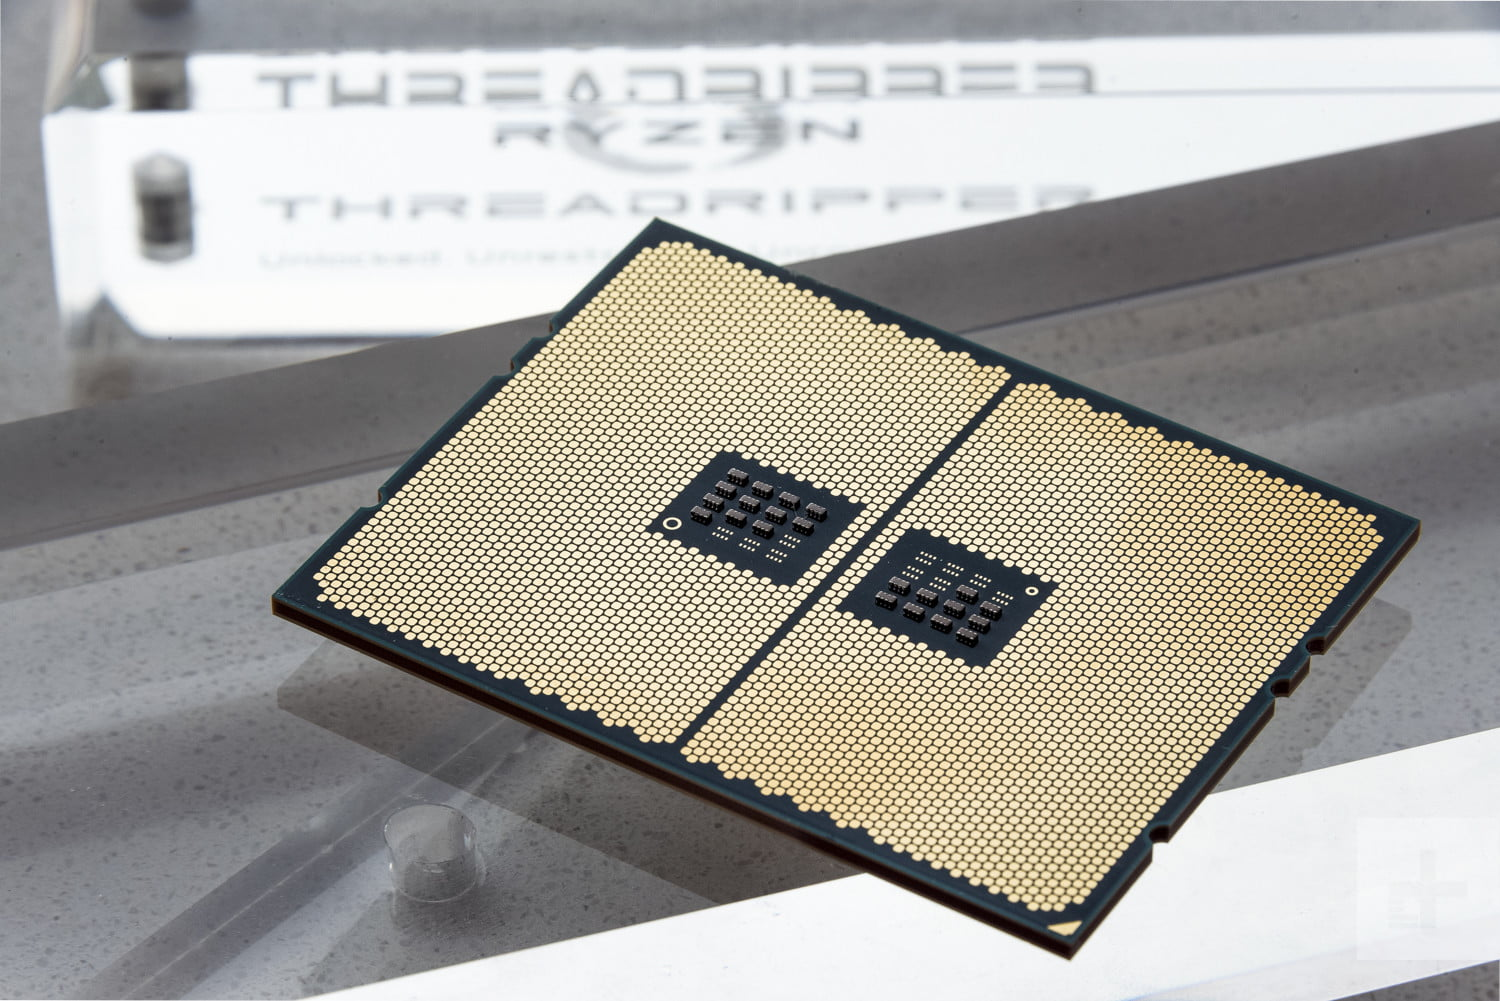 AMD Threadripper 5000 release date reportedly moved to November - Digital Trends